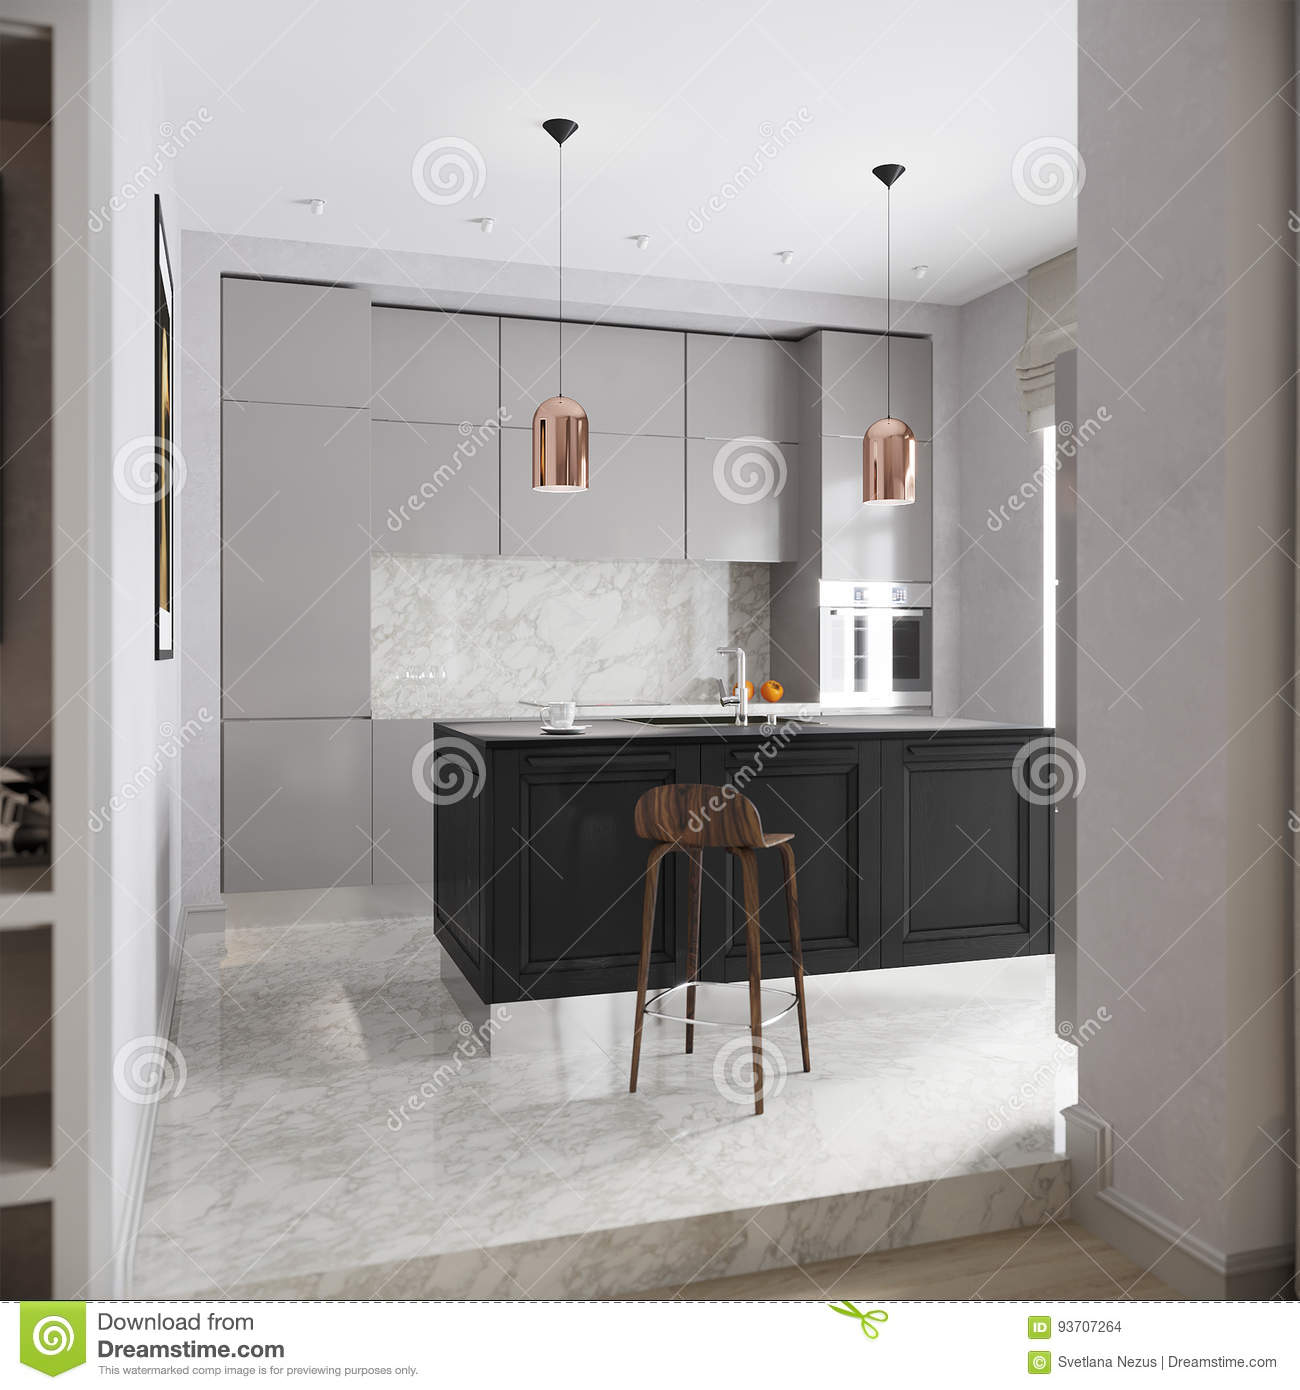 Modern Urban Contemporary Gray Kitchen Interior Stock Illustration